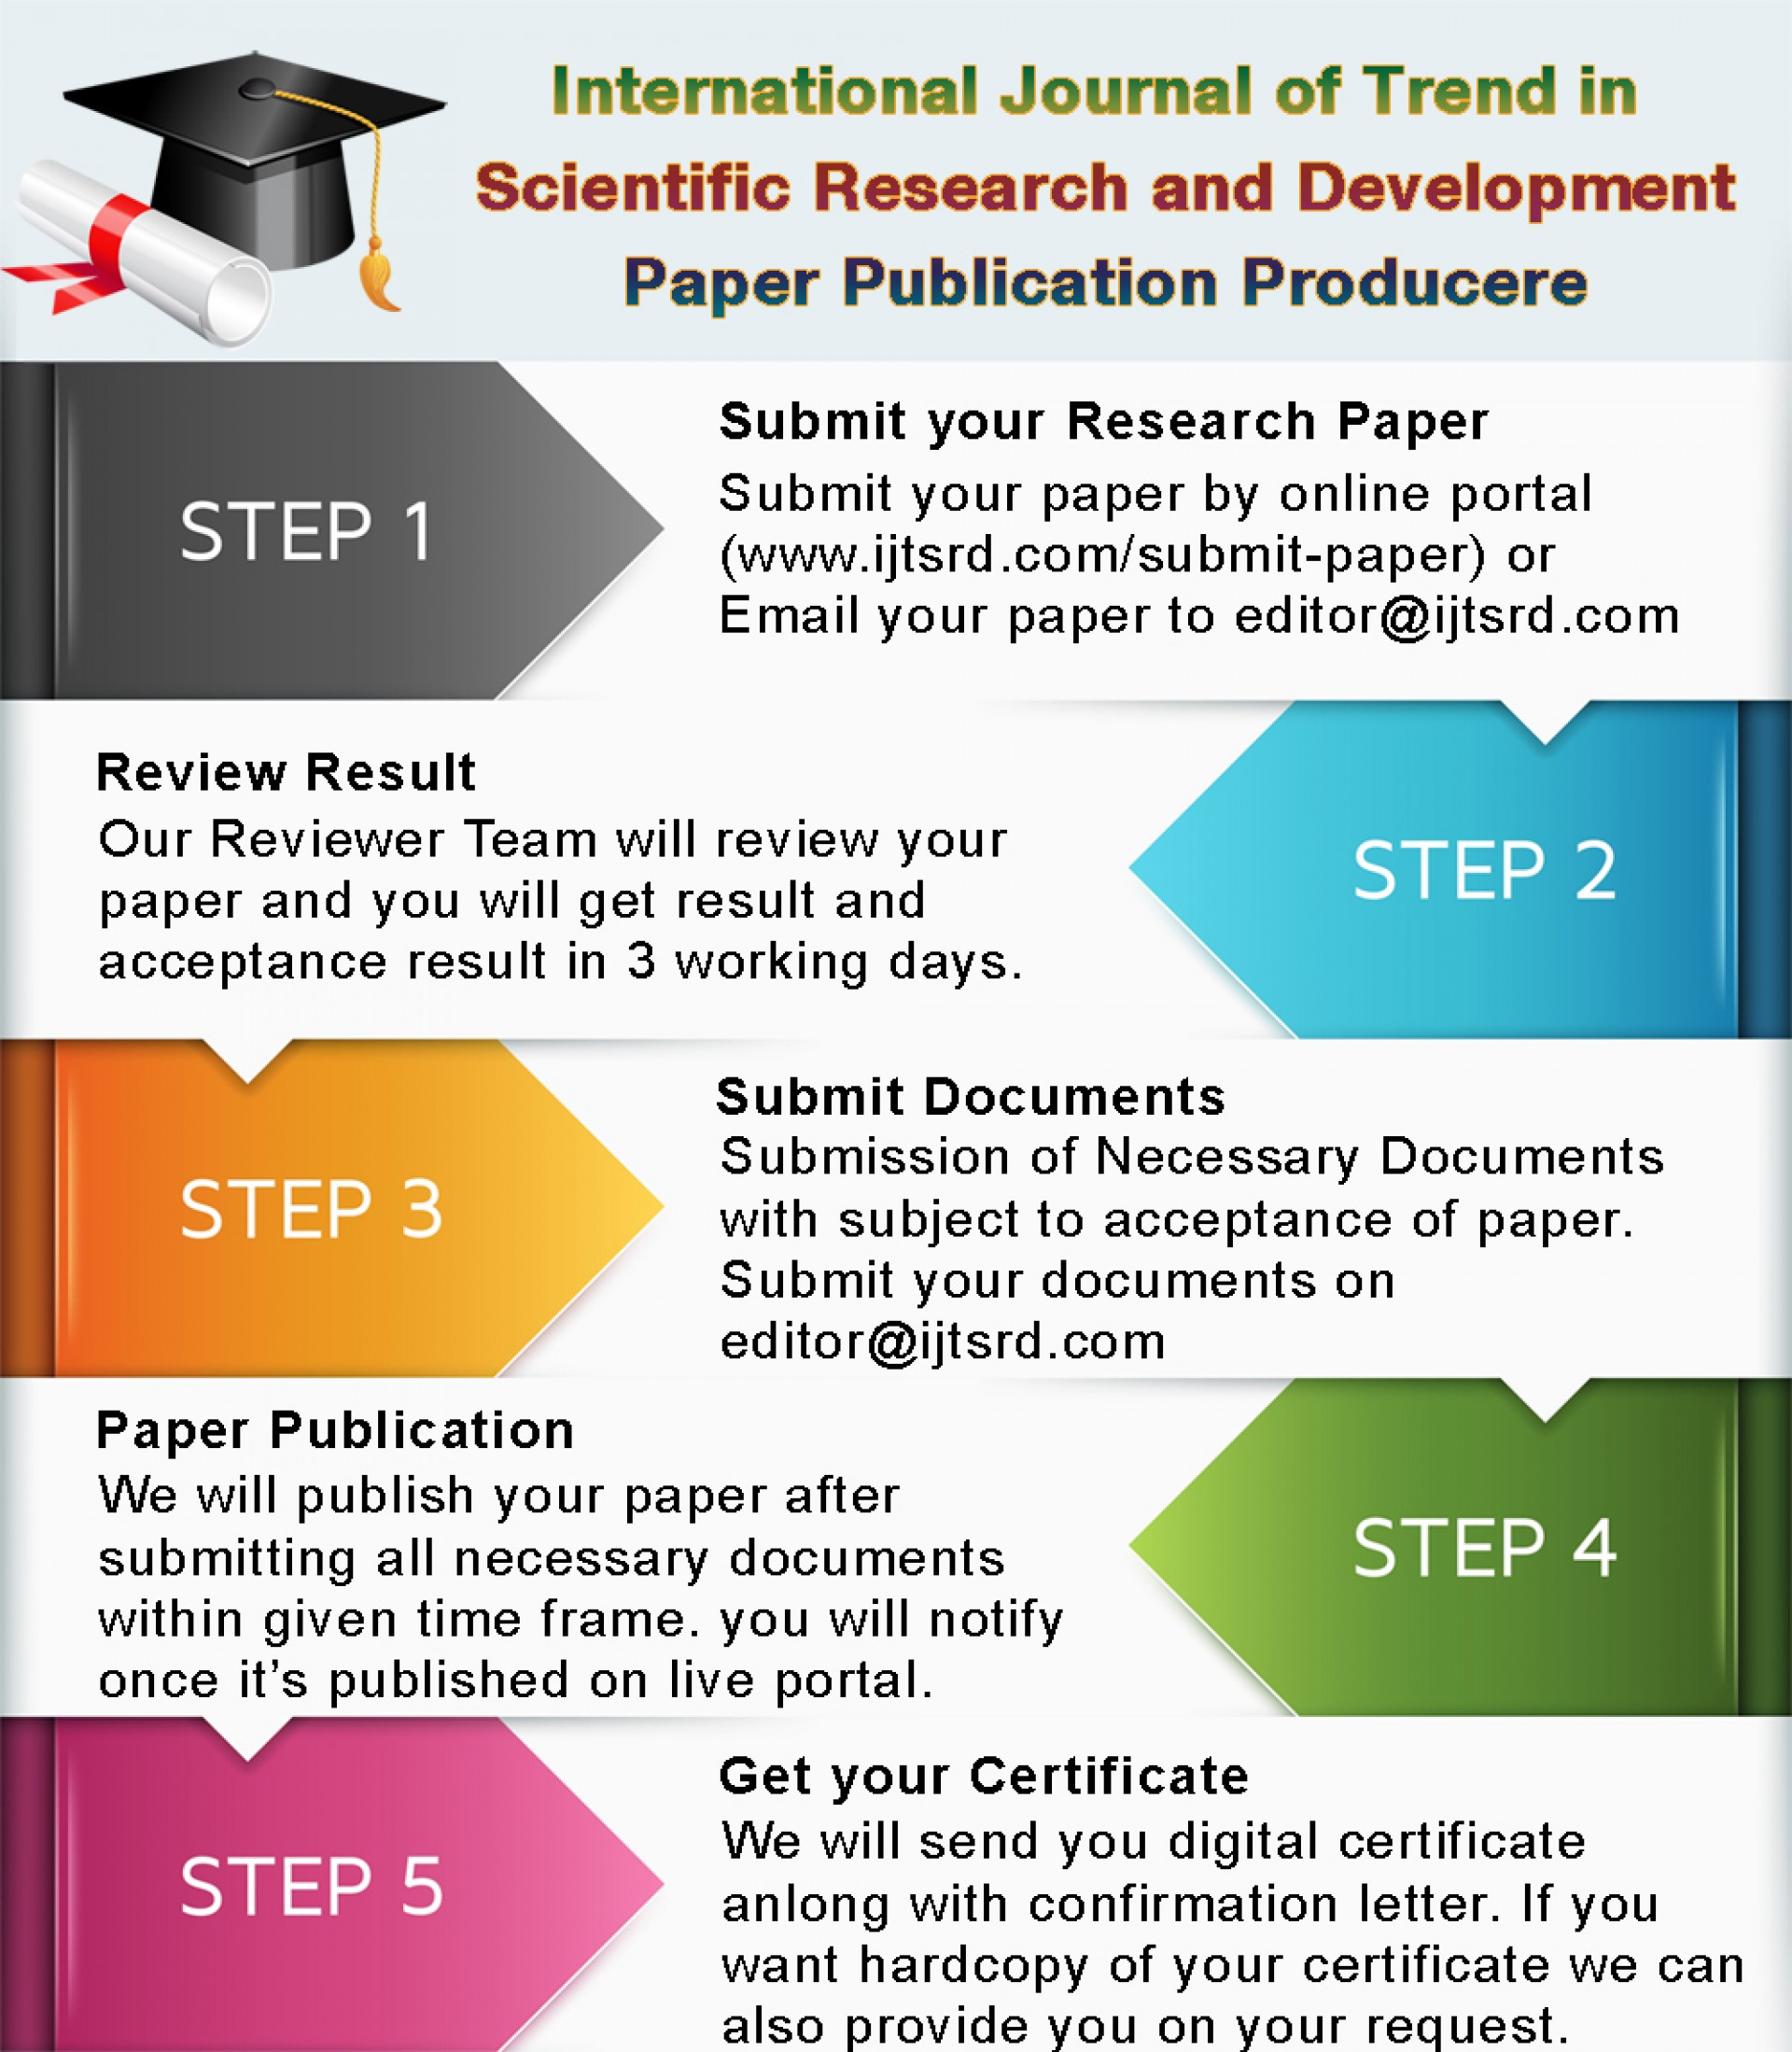 010 Publish My Research Paper Online Fantastic Free Check Plagiarism Of 1920